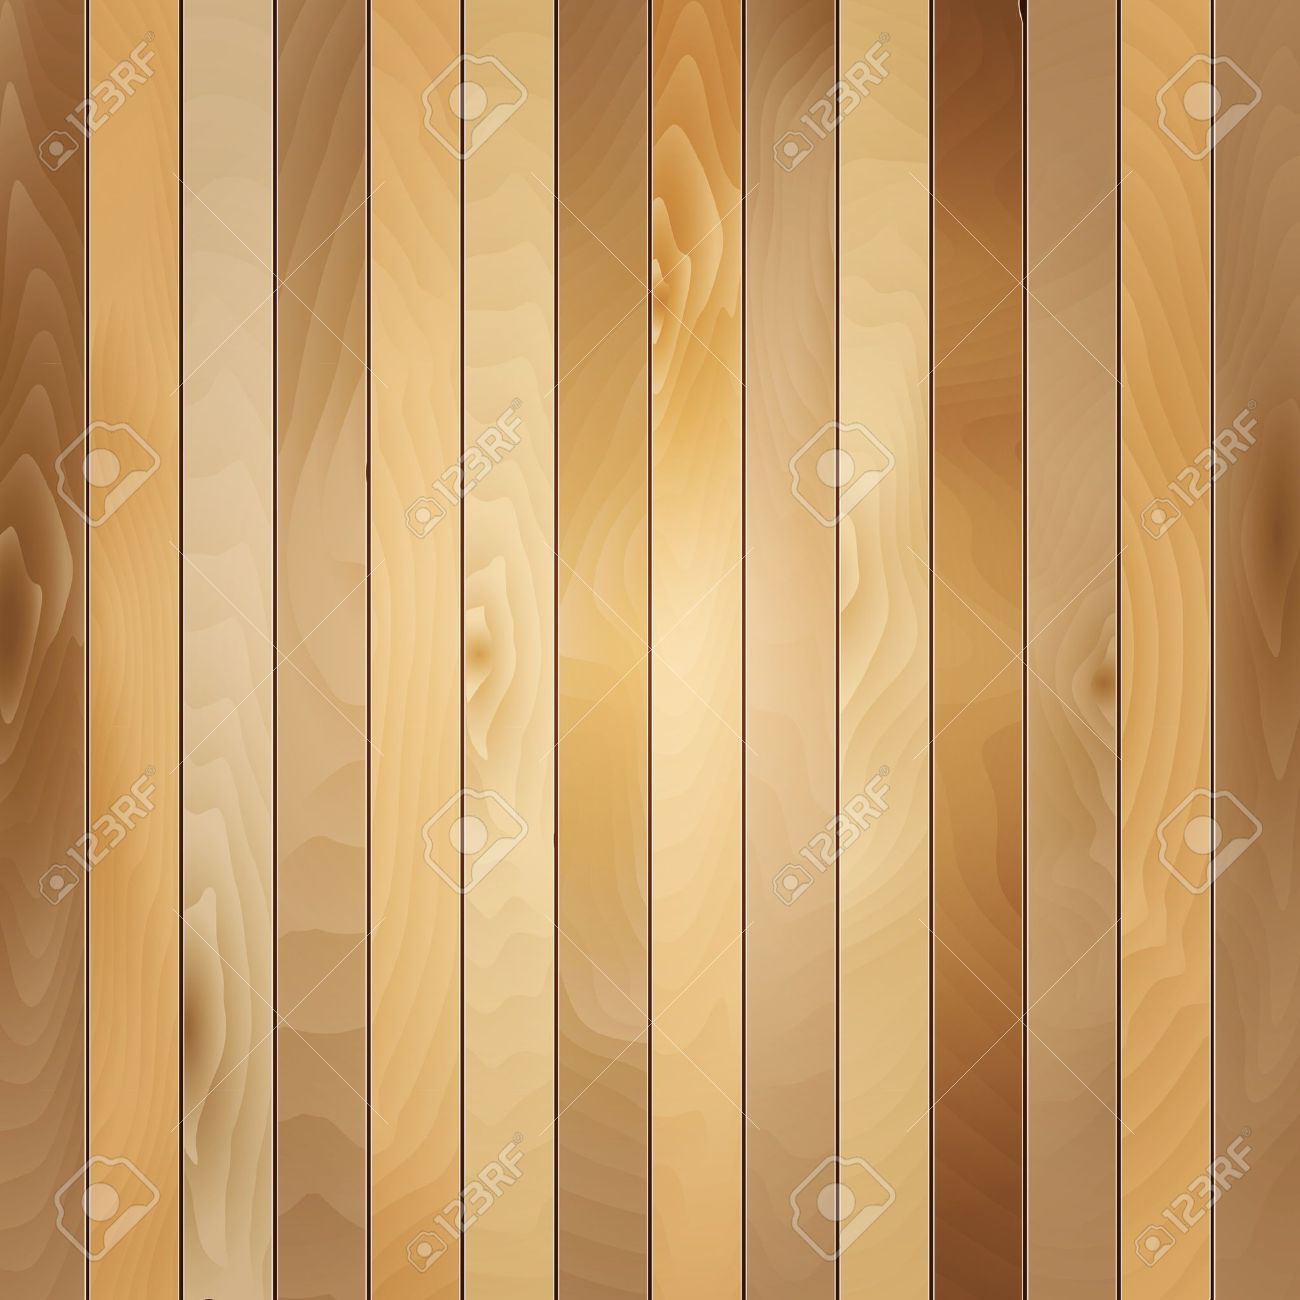 Vector wood board texture background - 16313305